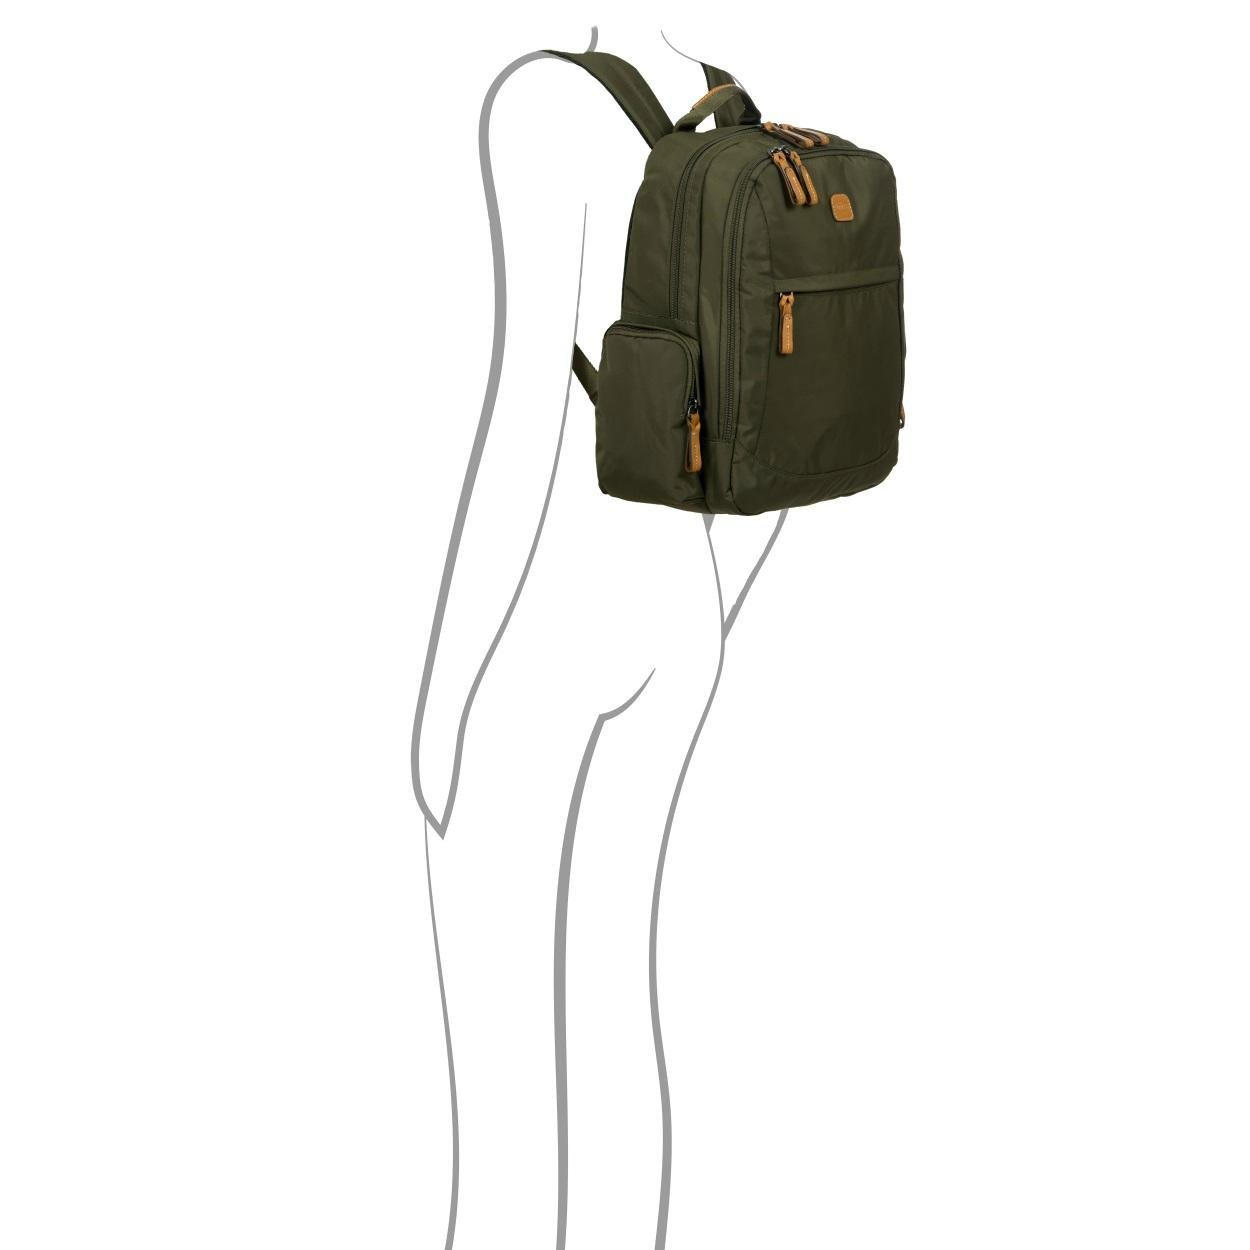 Bric's X-Bag/x-Travel 2.0 Nomad Laptop|Tablet Business Backpack, Navy, One Size by Bric's (Image #6)